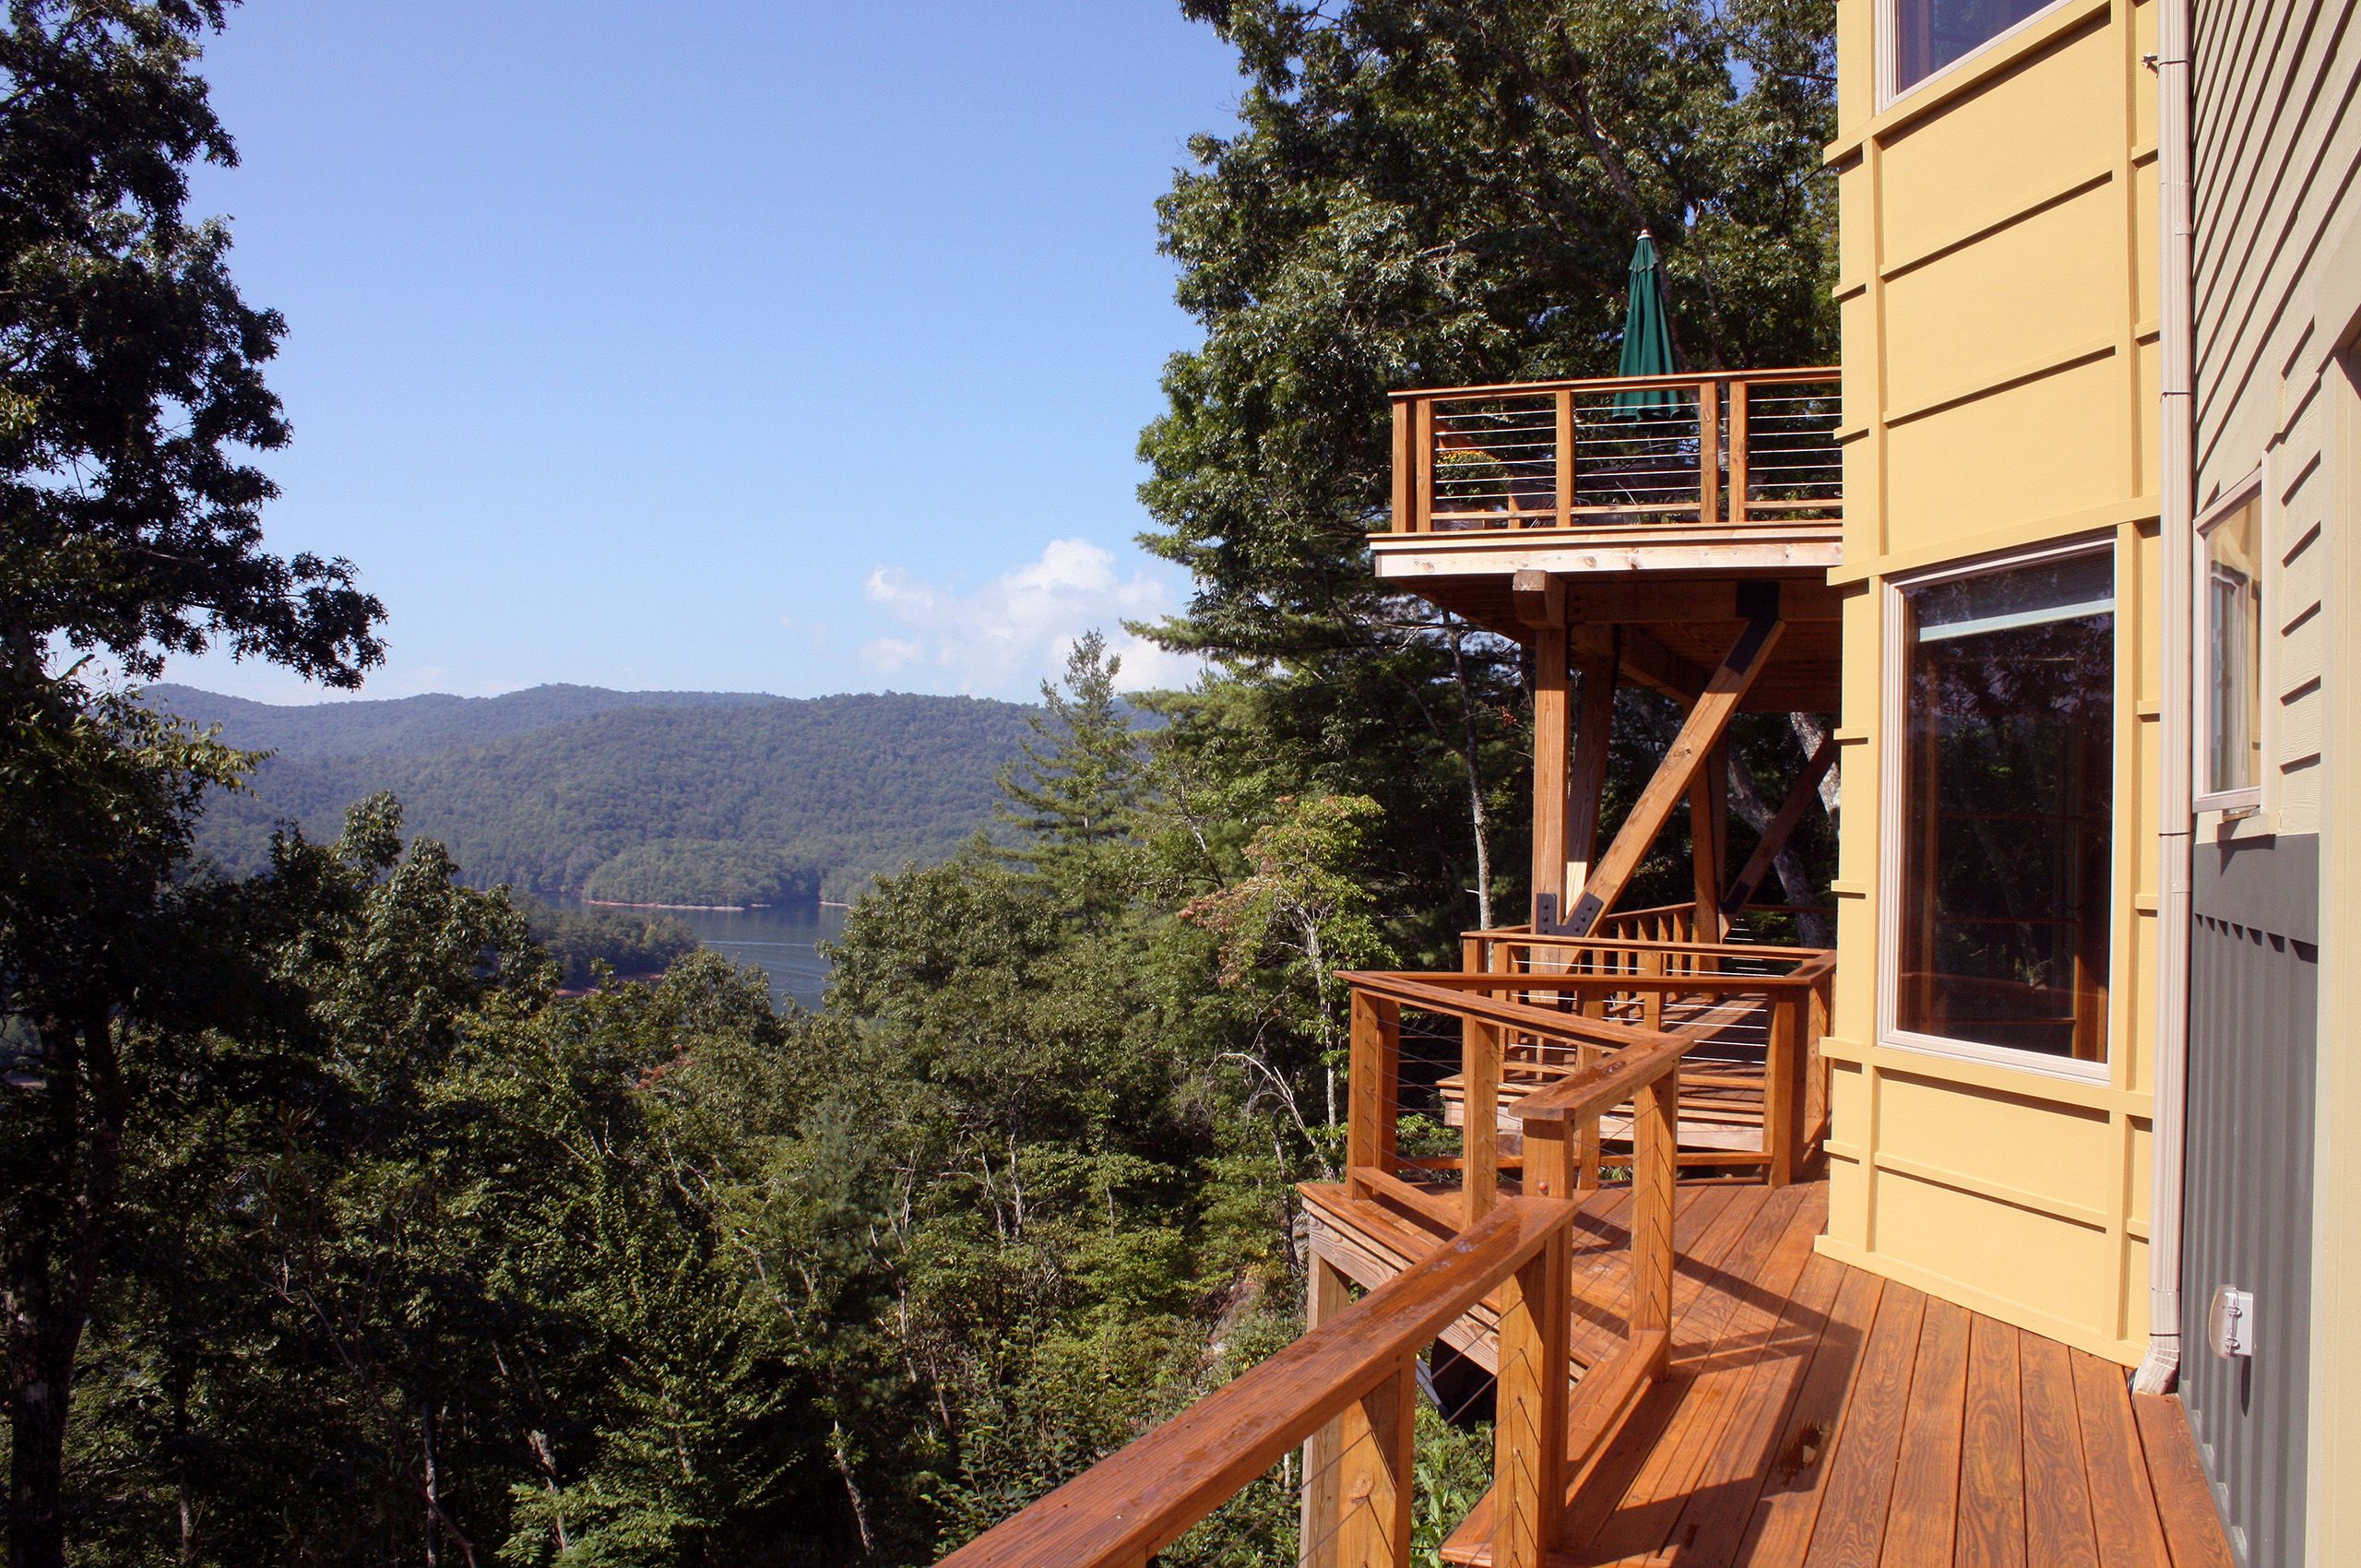 MountainRetreat-Lake Nantahala-NorthCarolina-LowerDeck2.jpg